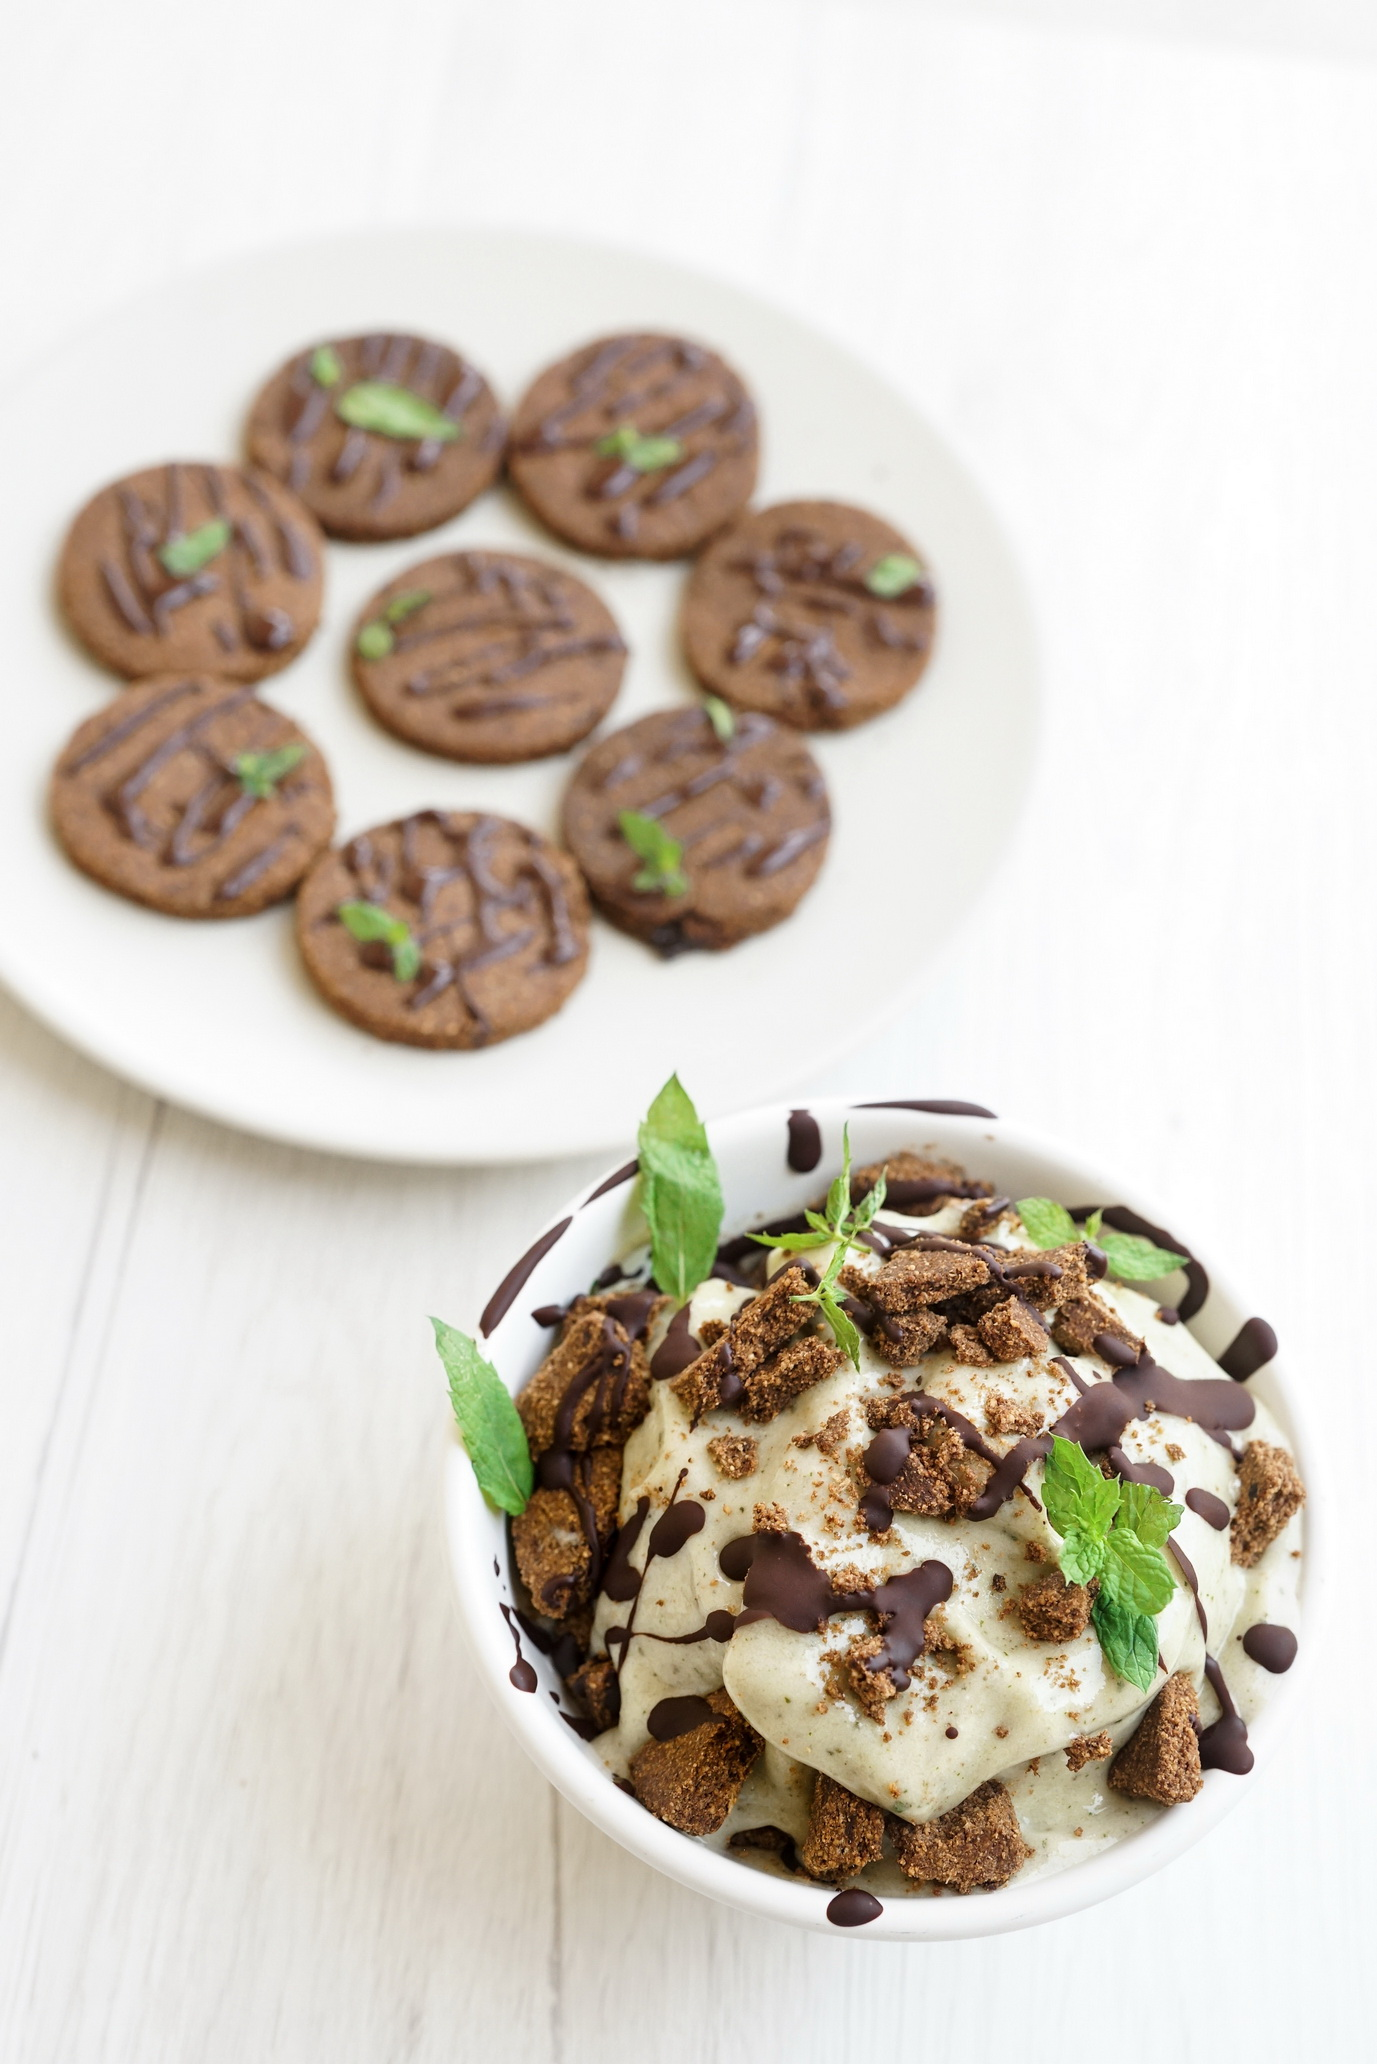 Mint Chip Ice Cream with Double Chocolate Cookies (GF, DF, Paleo)